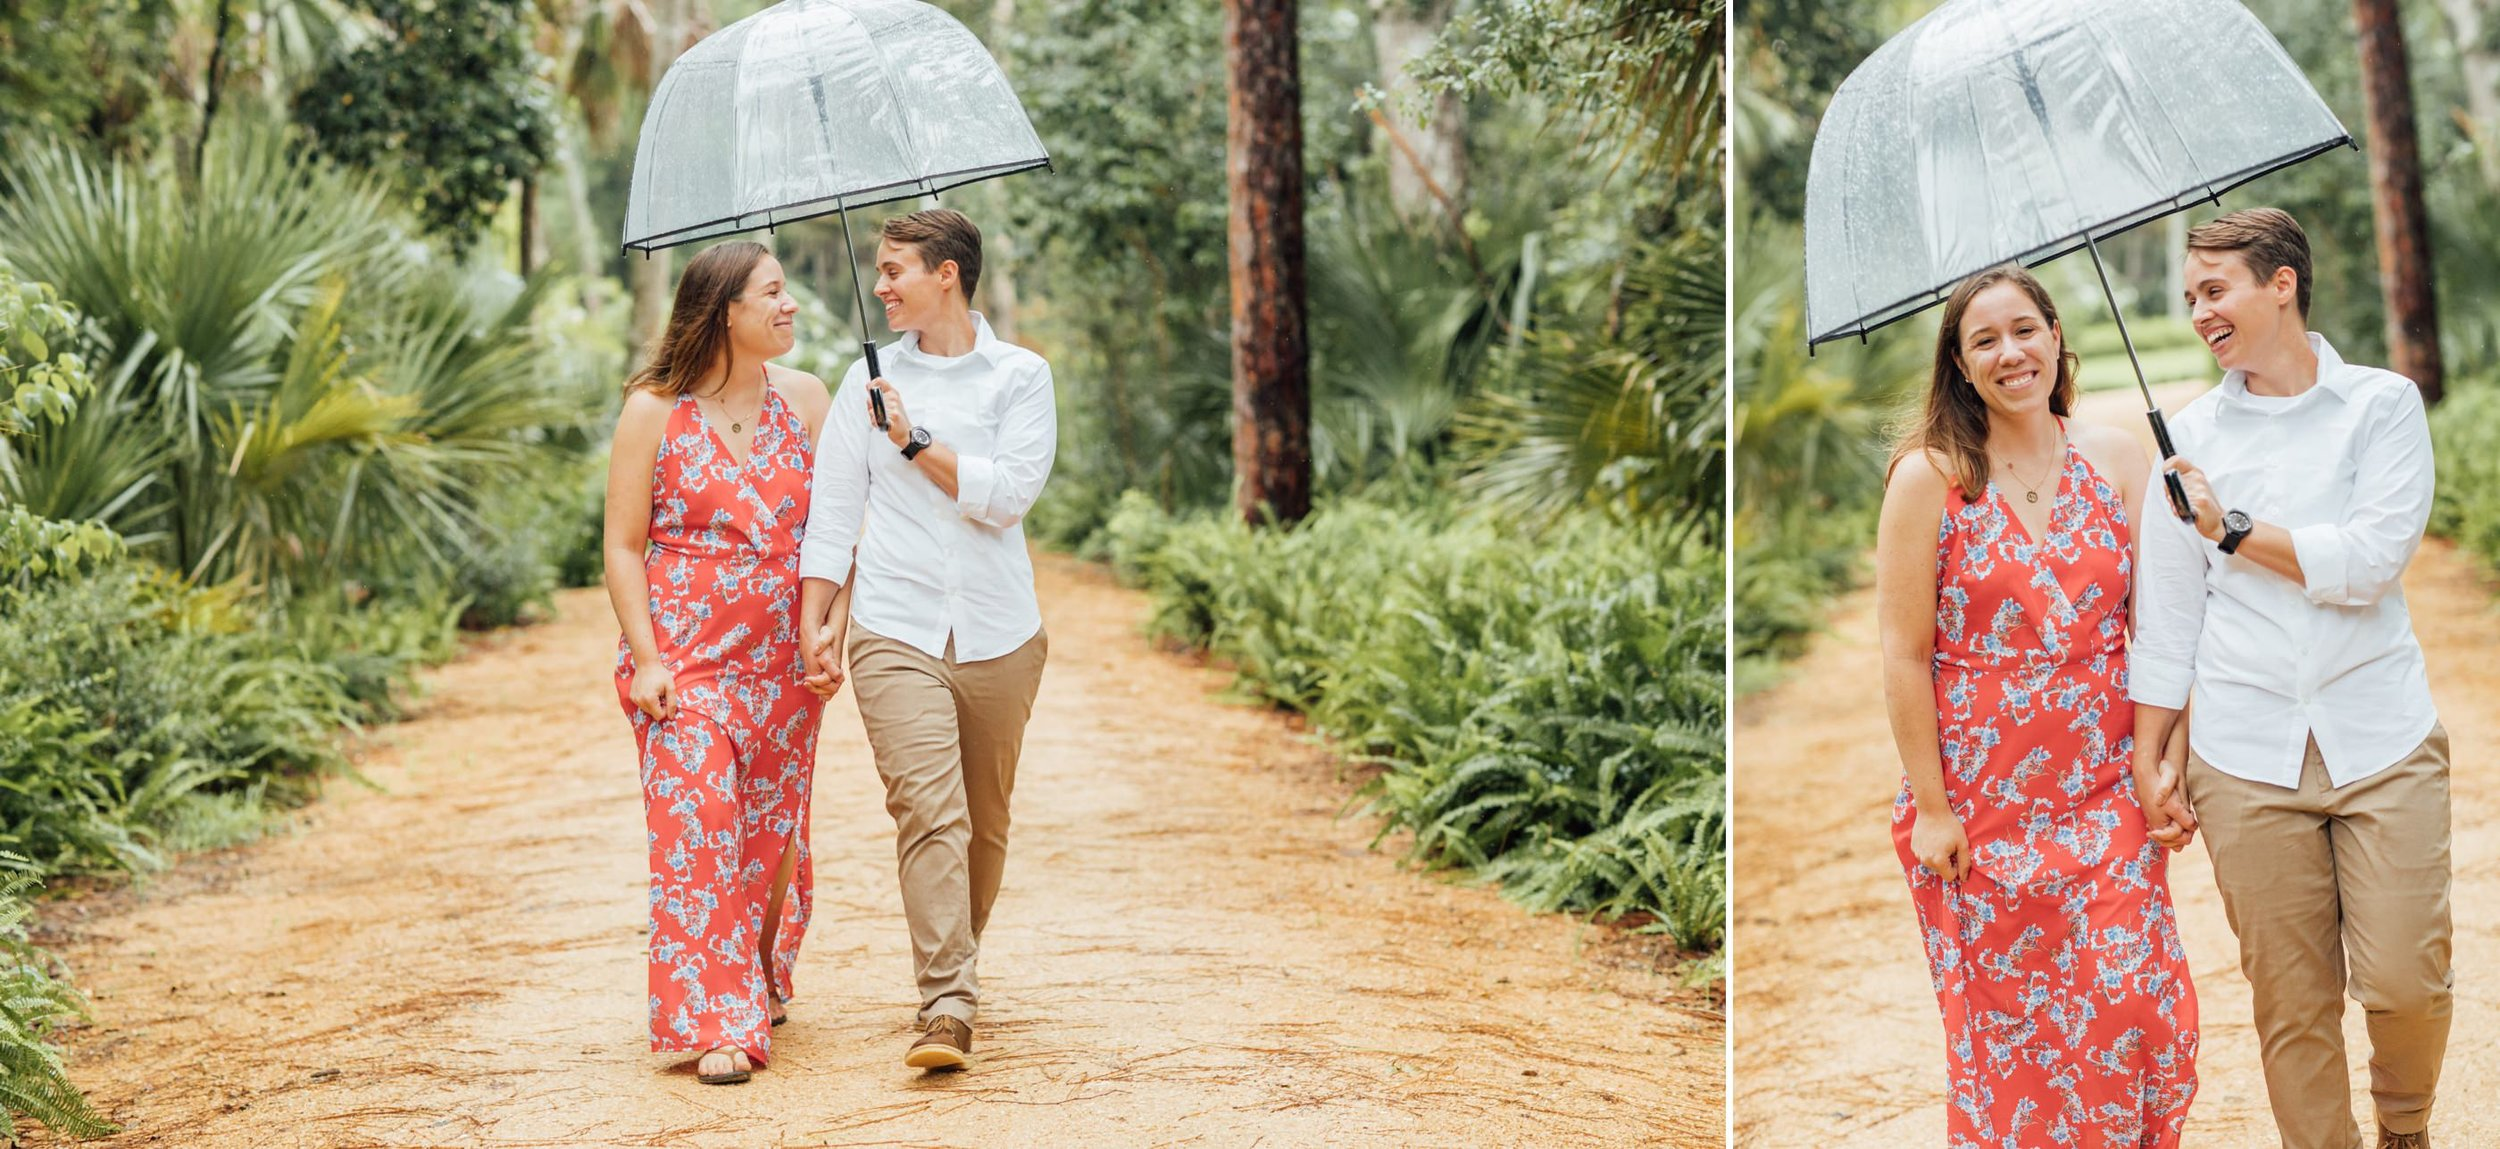 Orlando Natural Forest State Park Engagement Photos- Romantic LGBT Engaged Couples photos2.jpg